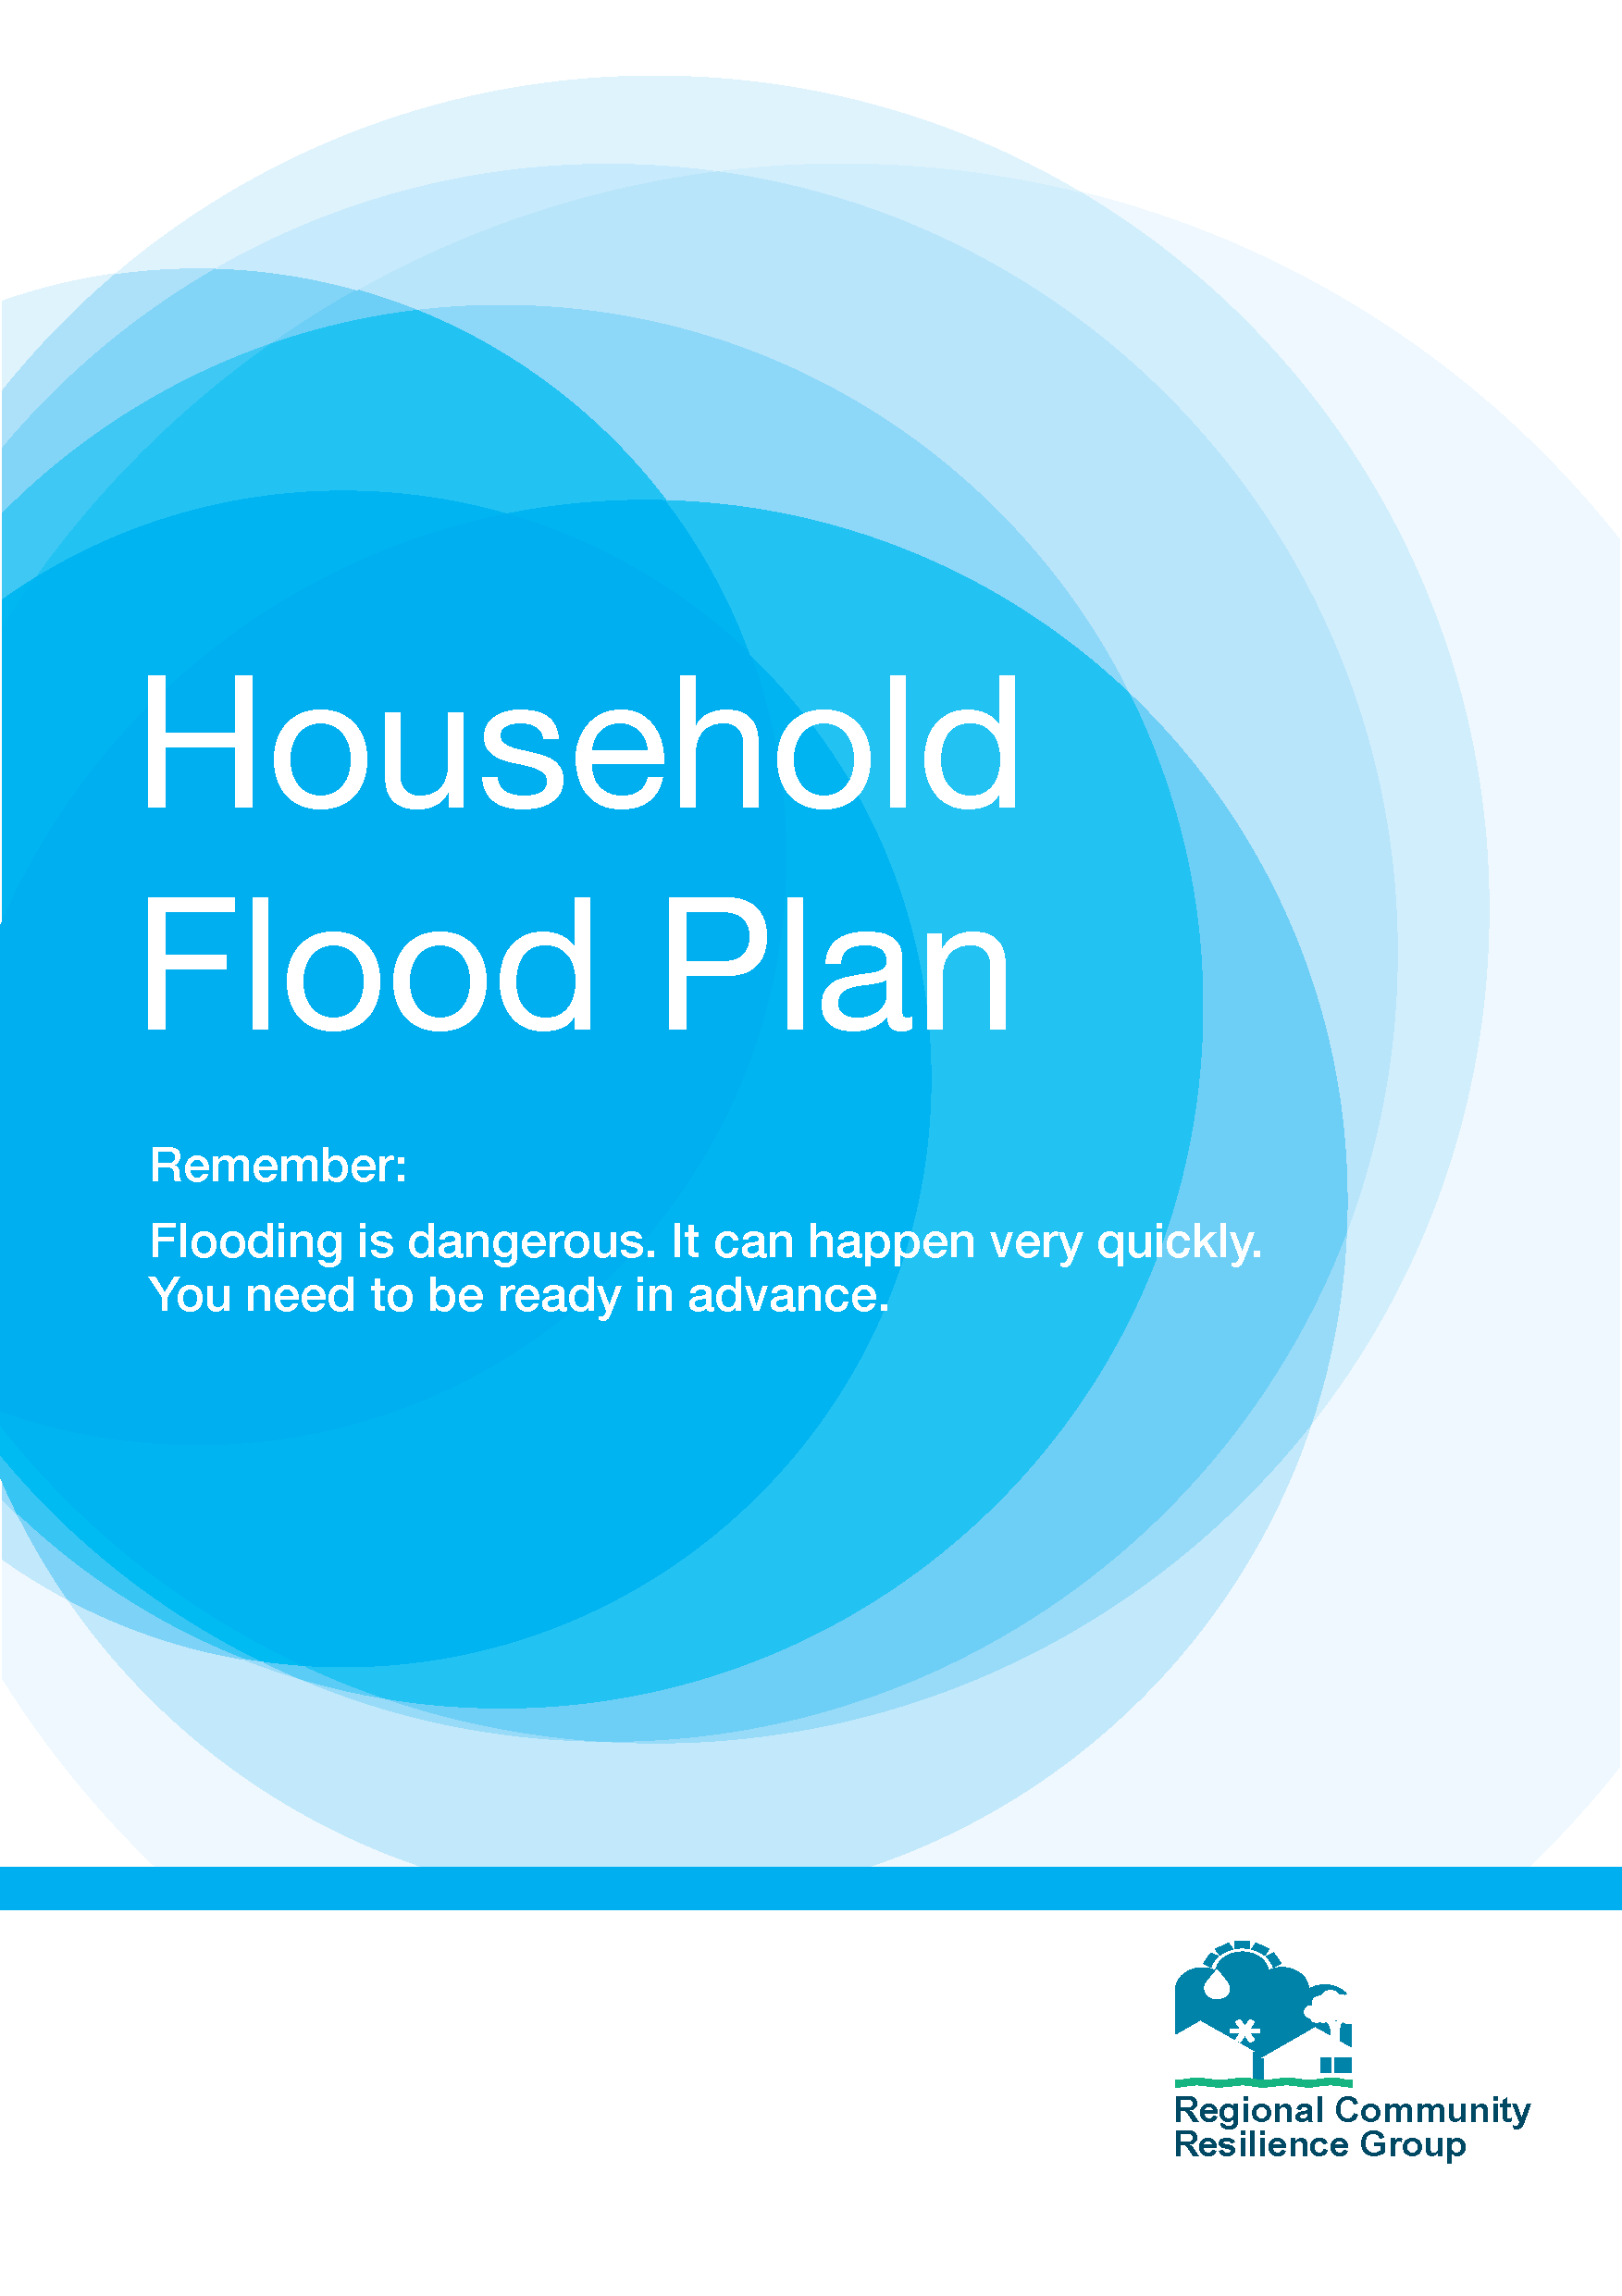 Household Flood Plan